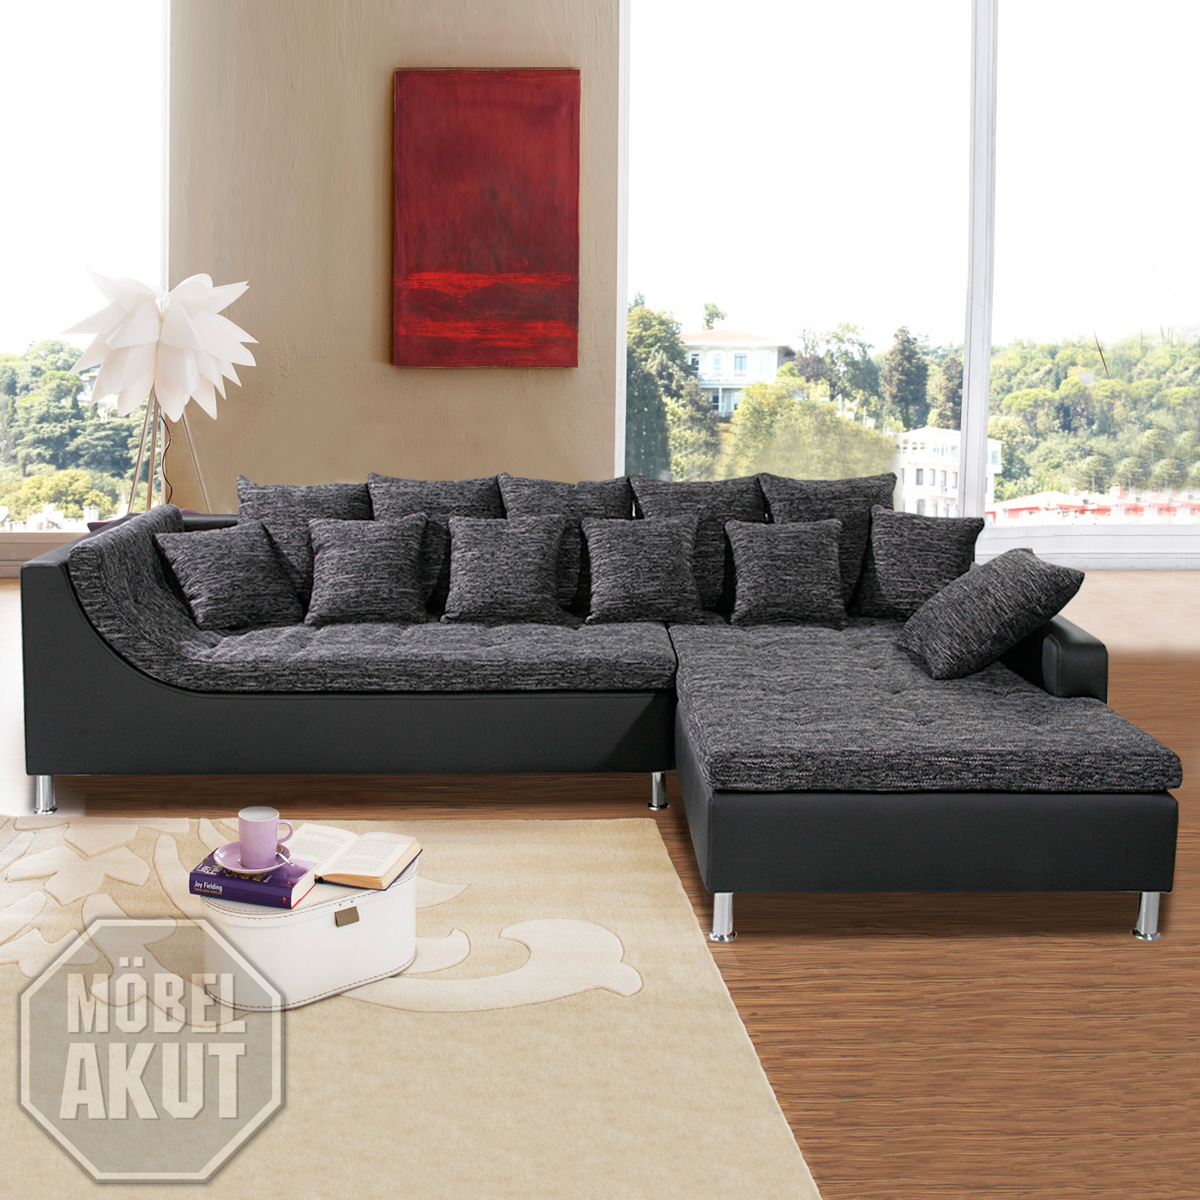 wohnlandschaft moreno sofa schwarz grau neu ovp ebay. Black Bedroom Furniture Sets. Home Design Ideas